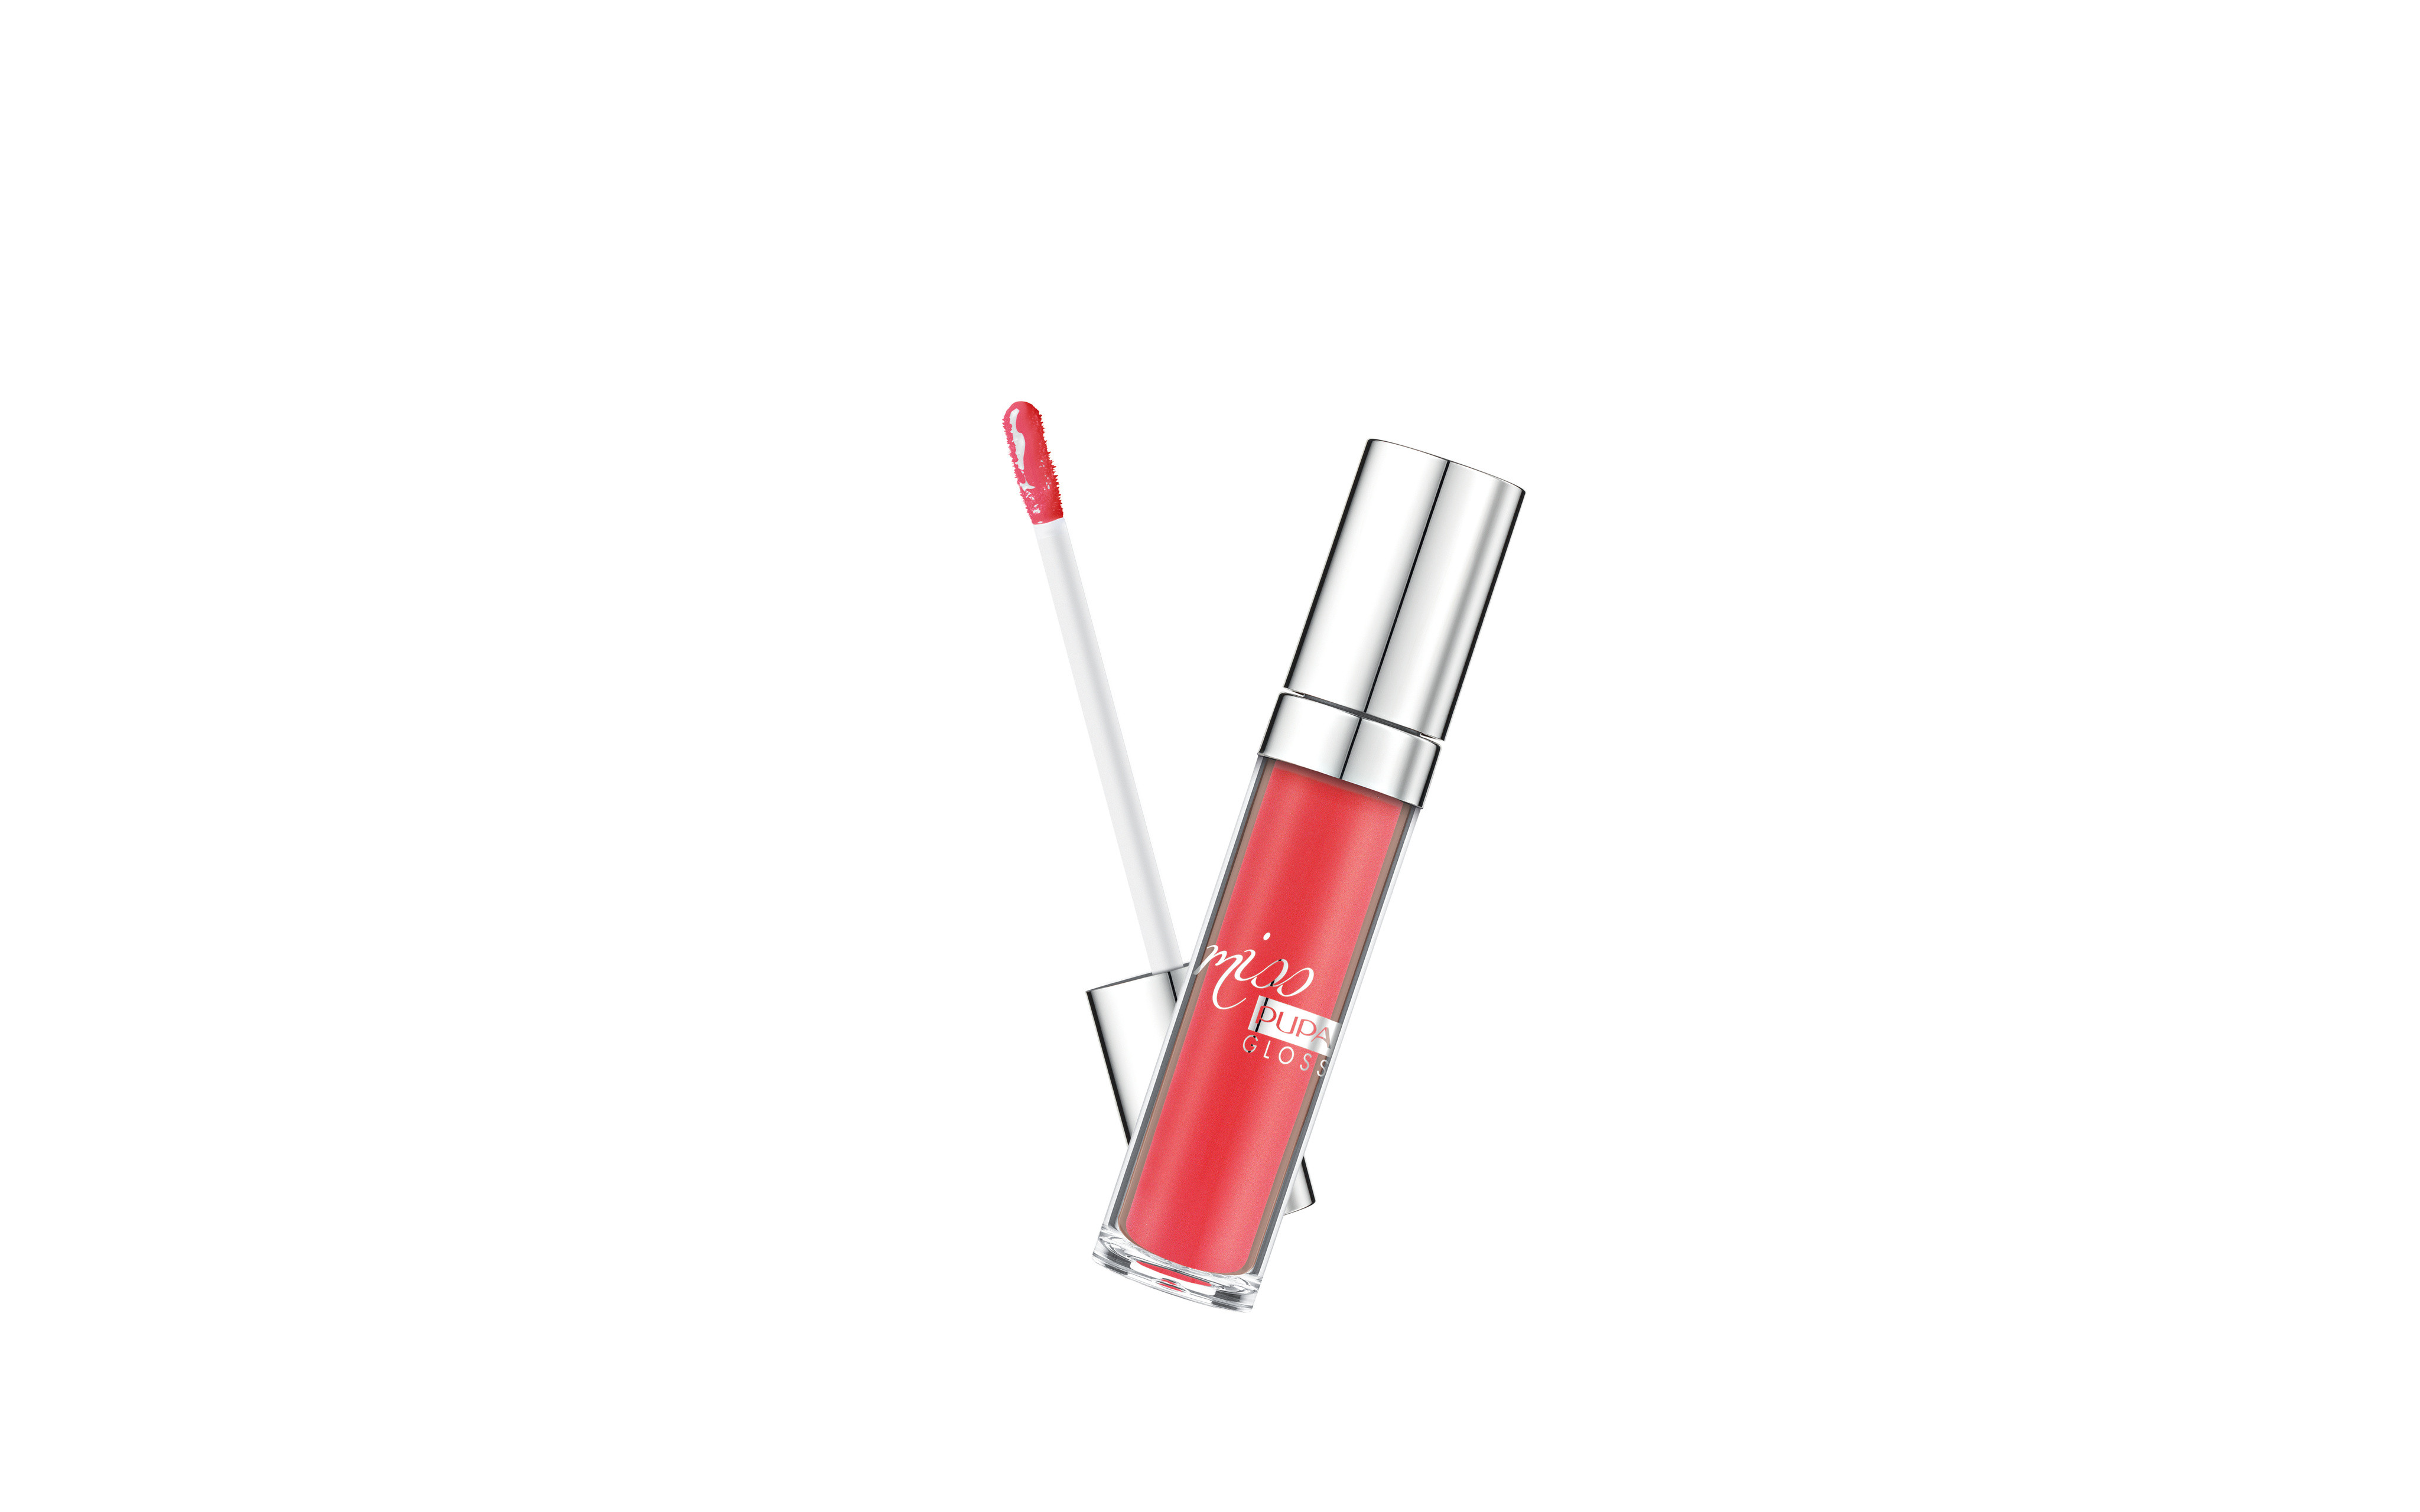 Pupa miss pupa gloss - 203, 203CORAL EMOTION, large image number 0